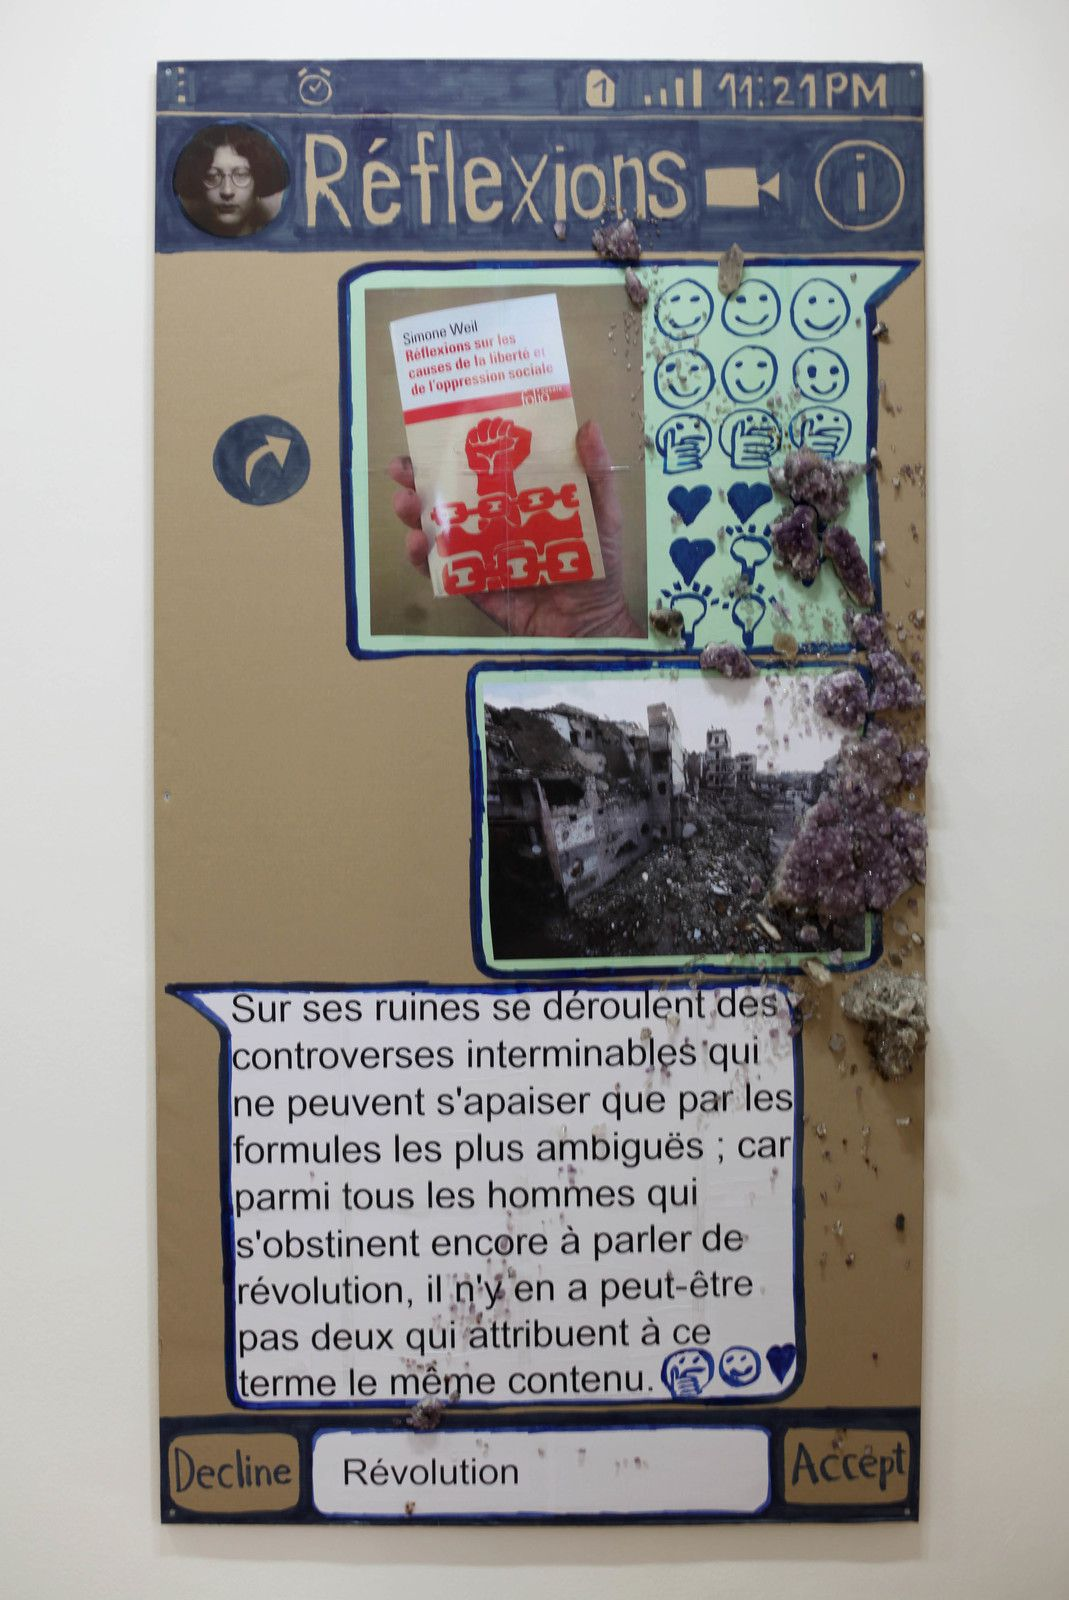 """Reflexions (Chat - poster)"", 2020 de Thomas HIRSCHHORN - Courtesy Galerie Chantal Crousel @ Photo Éric Simon"